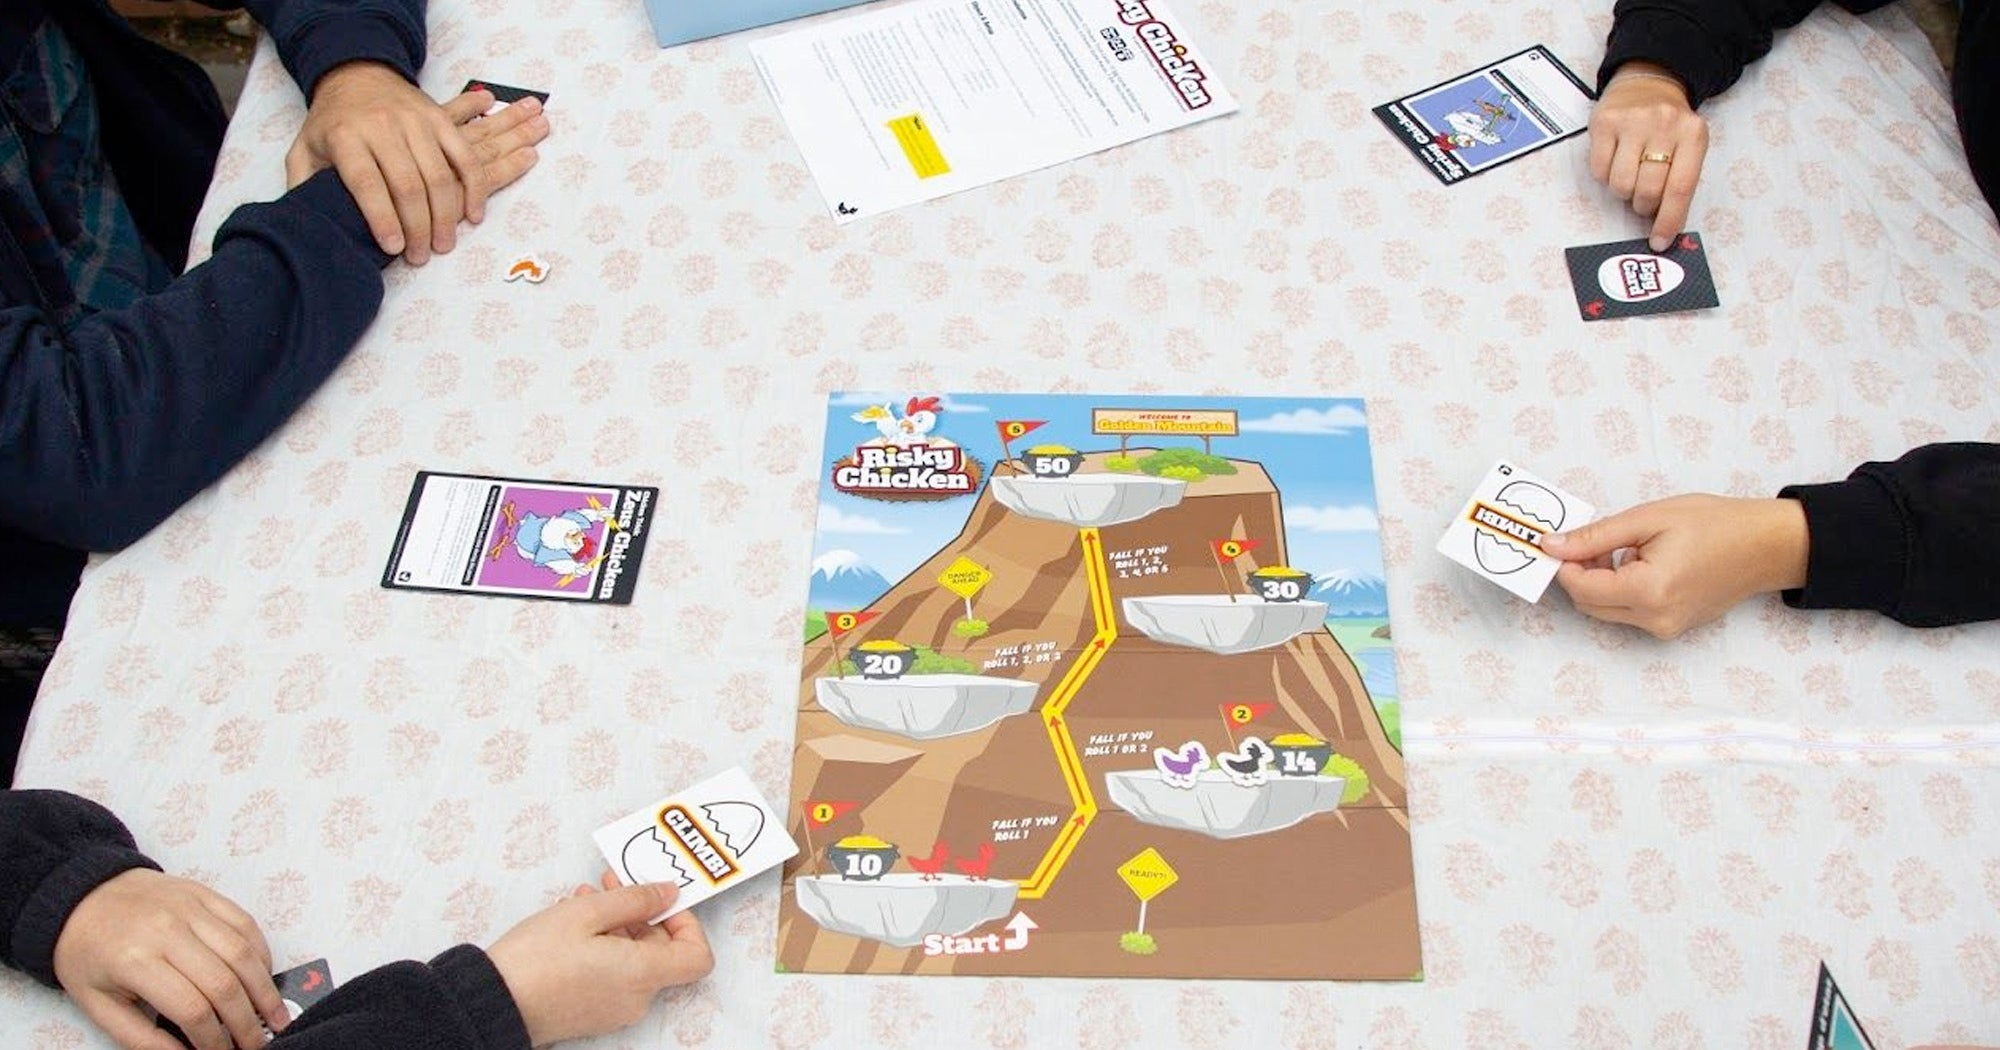 Tabletop Board Game Risky Chicken